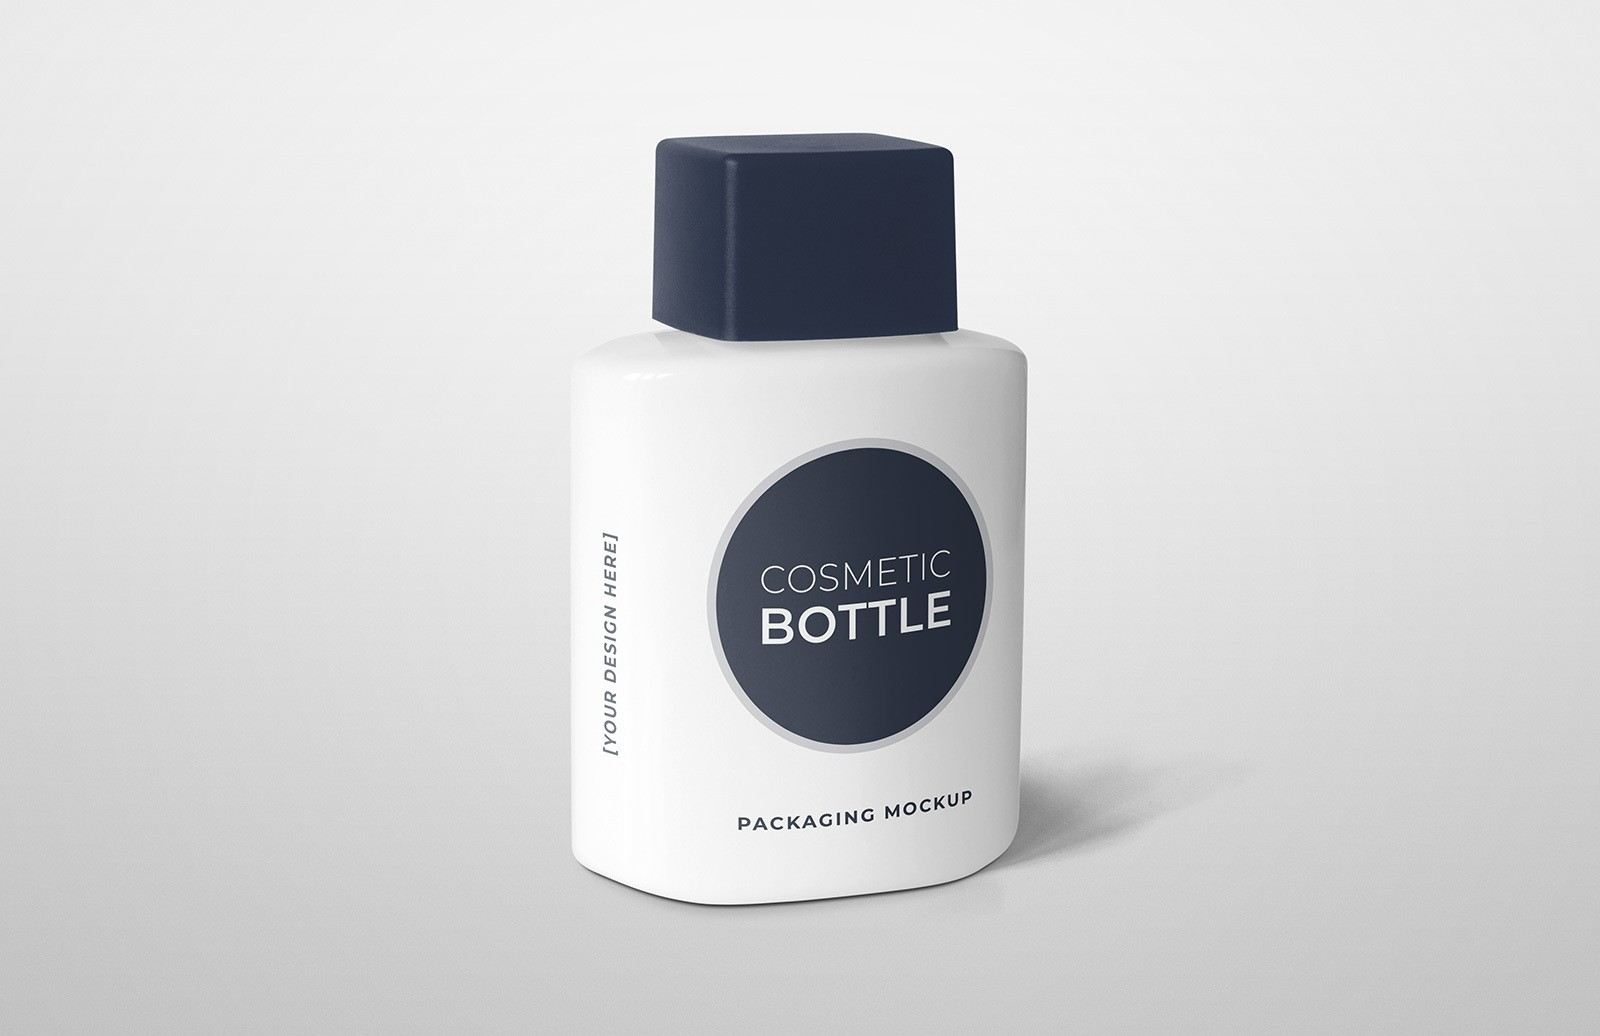 Cosmetic Bottle Packaging Mockup Preview 1